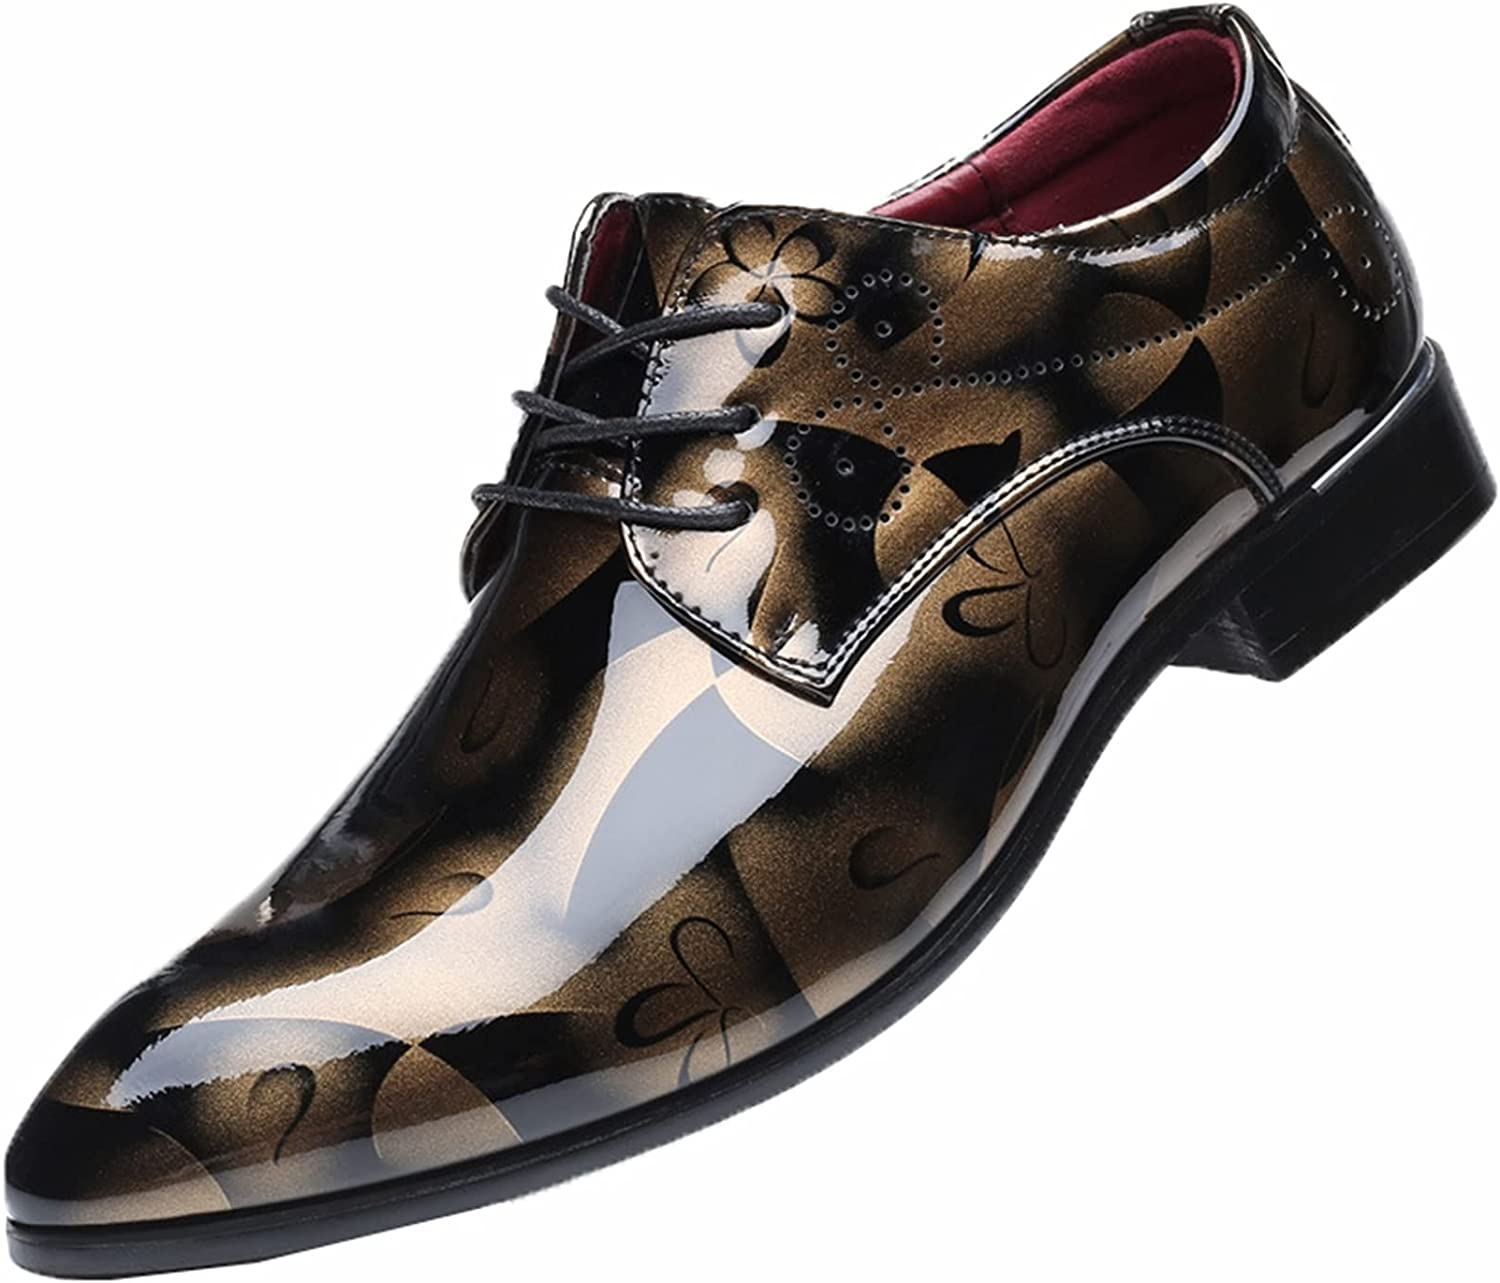 Men Dress Shoes Vintage Breathable Patent Leather Lace up Floral Print Derby Shoes Formal Pointed Toe Wedding Business Shoes